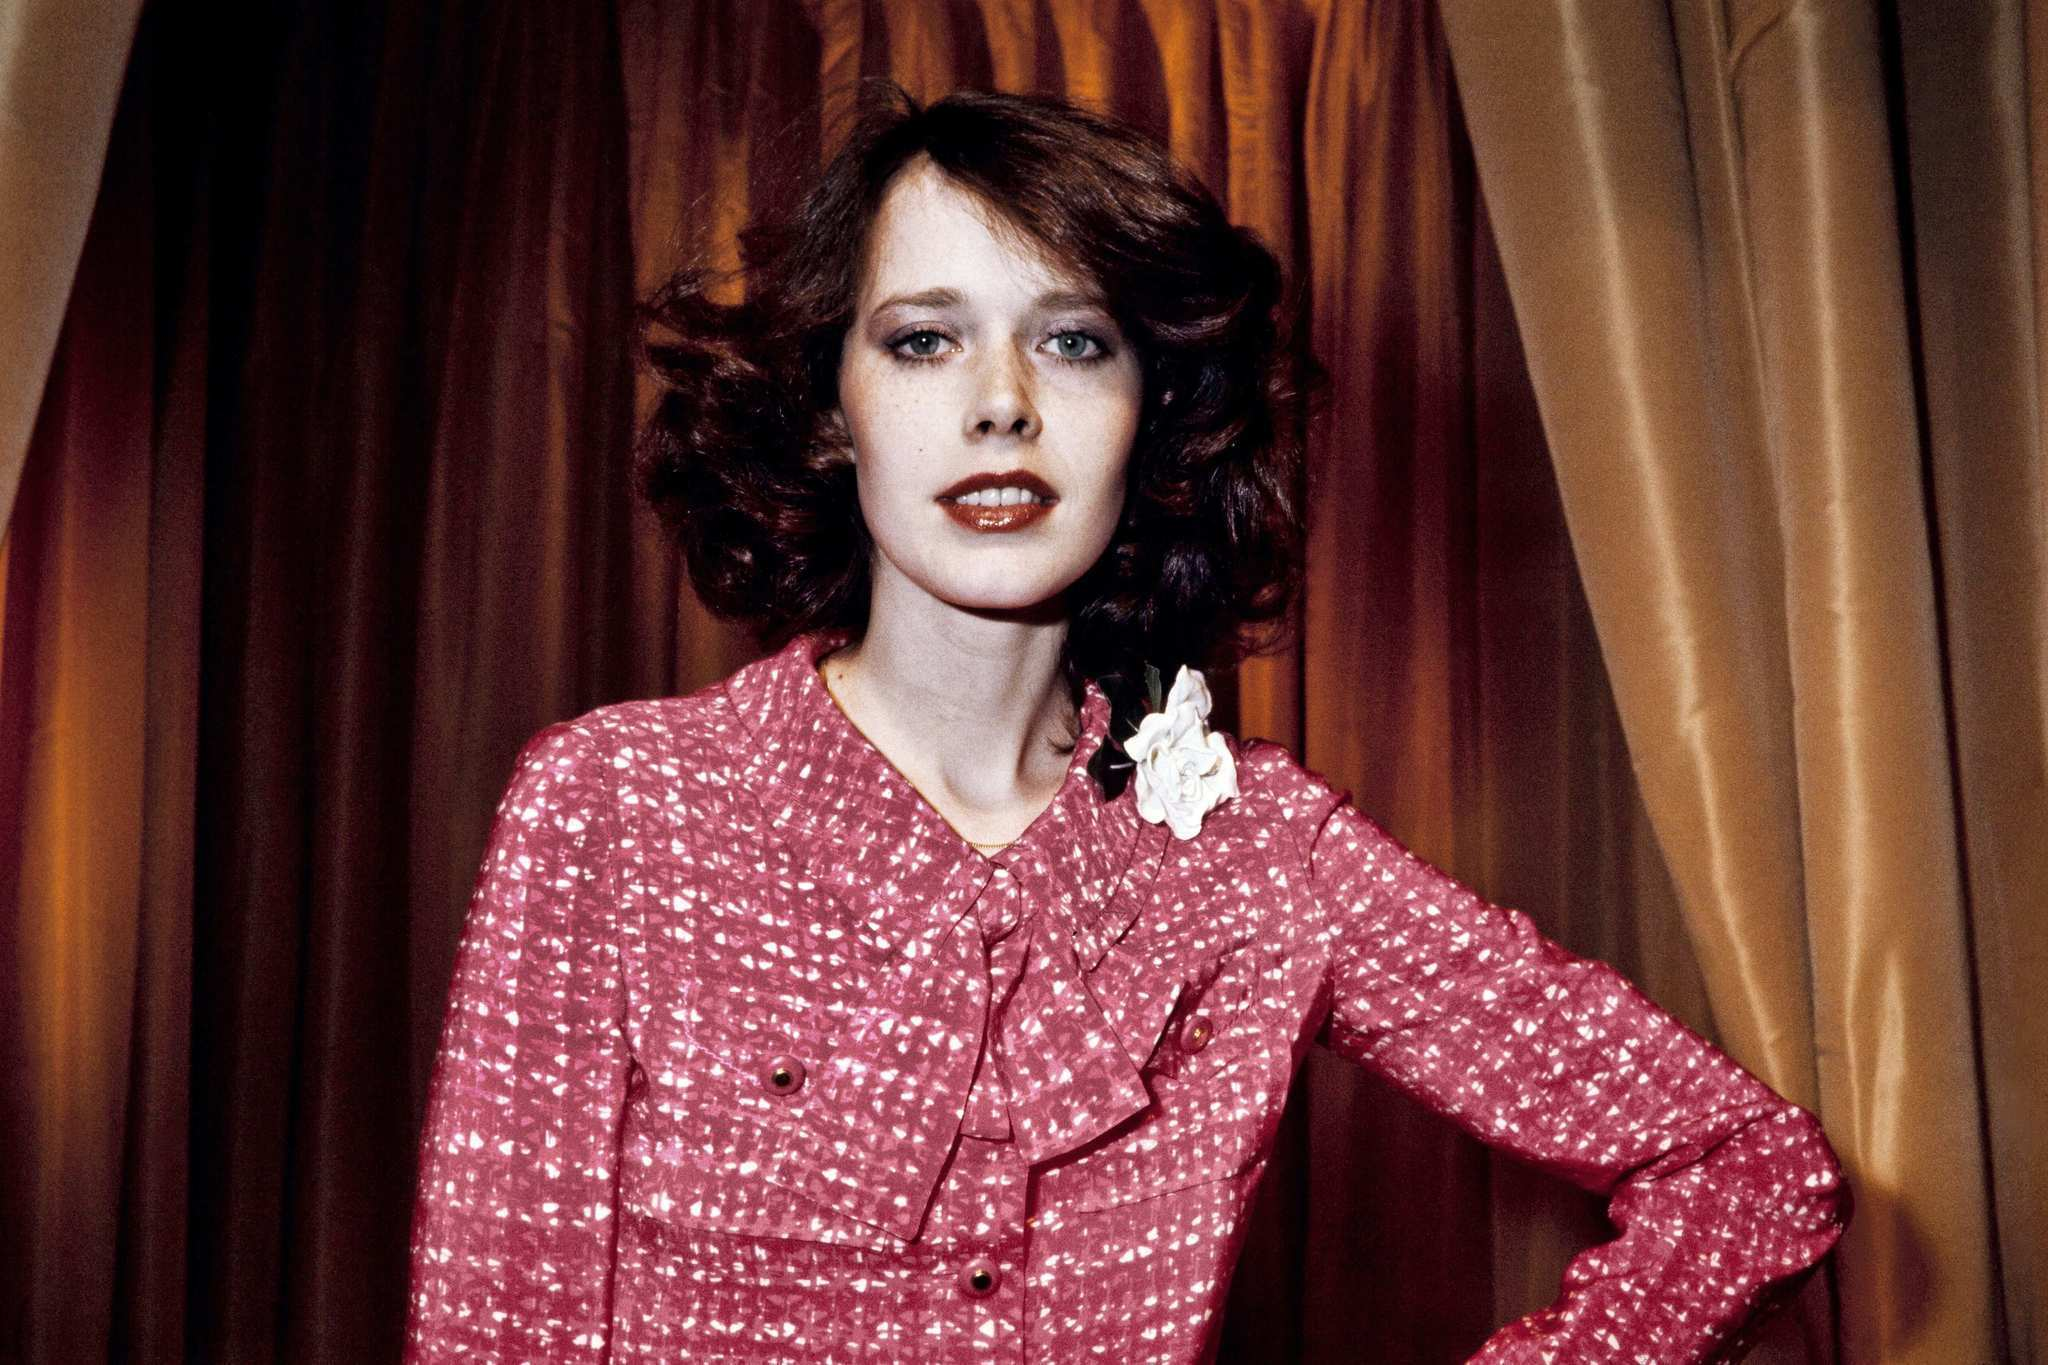 sylvia kristel instagramsylvia kristel private lessons 1981, sylvia kristel instagram, sylvia kristel cancer, sylvia kristel died, sylvia kristel private lessons youtube, sylvia kristel l'amour d'aimer, sylvia kristel, sylvia kristel wiki, sylvia kristel wikipedia, sylvia kristel imdb, sylvia kristel interview, sylvia kristel death, sylvia.kristel.emmanuelle